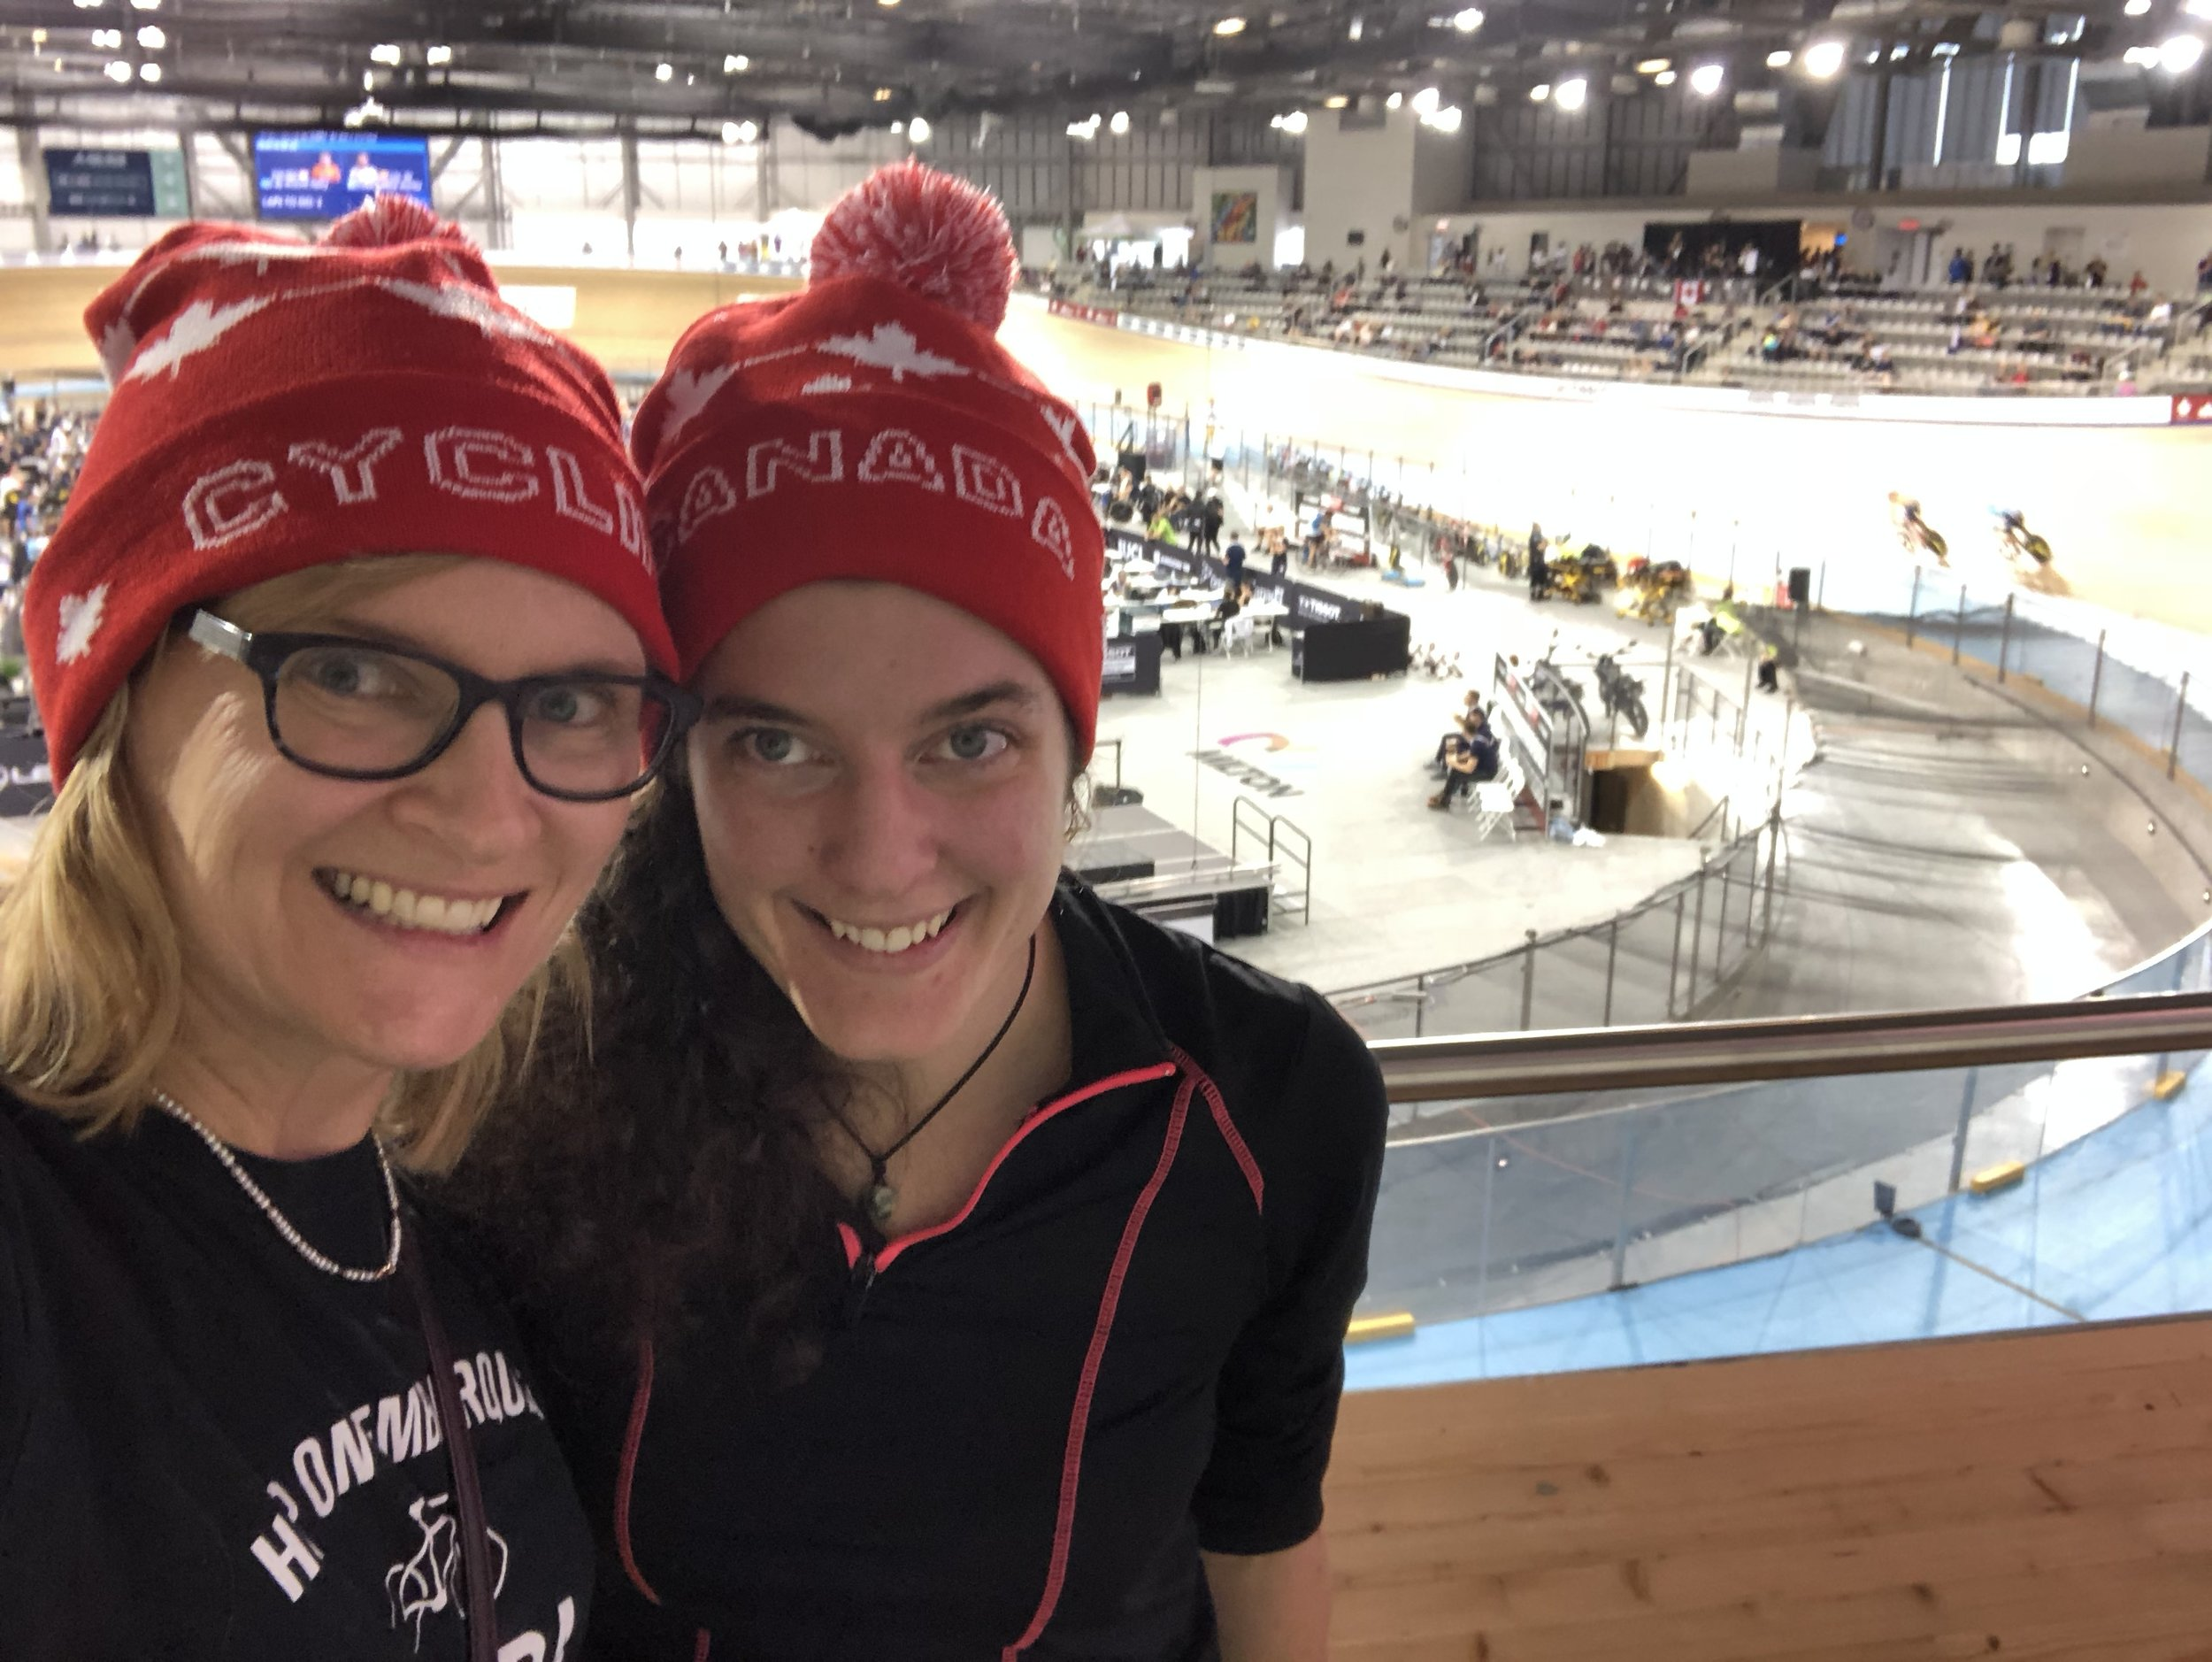 Gail and Meika were in full gear and ready to cheer on all the competitors in Milton!